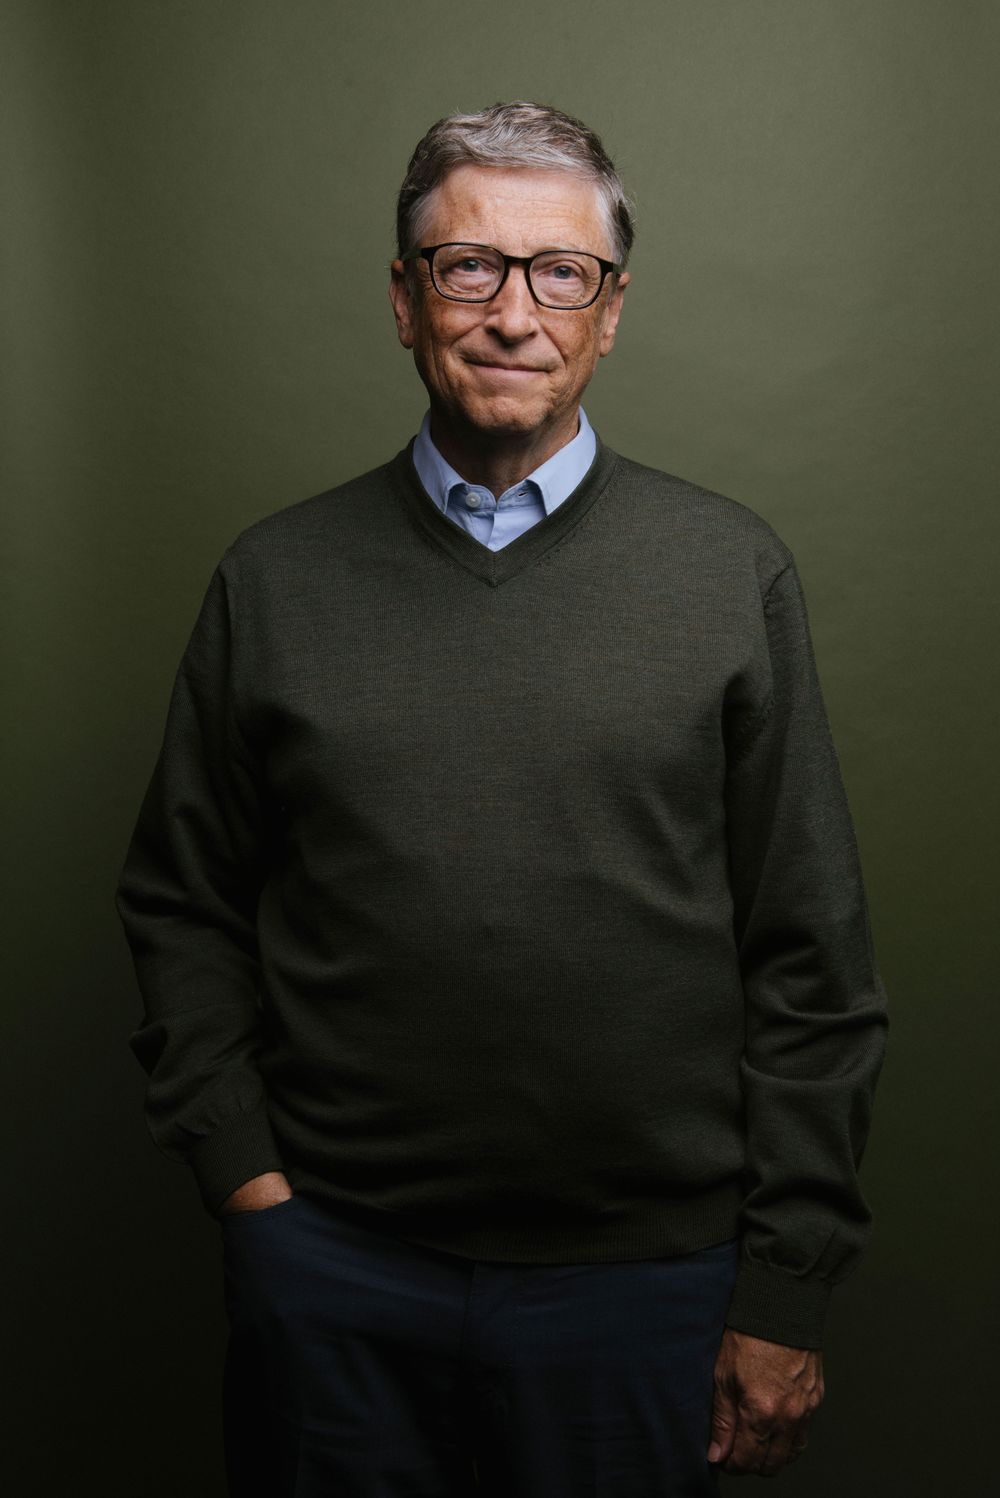 Bill Gates on Climate Change and Adapting to Warmer World - Bloomberg